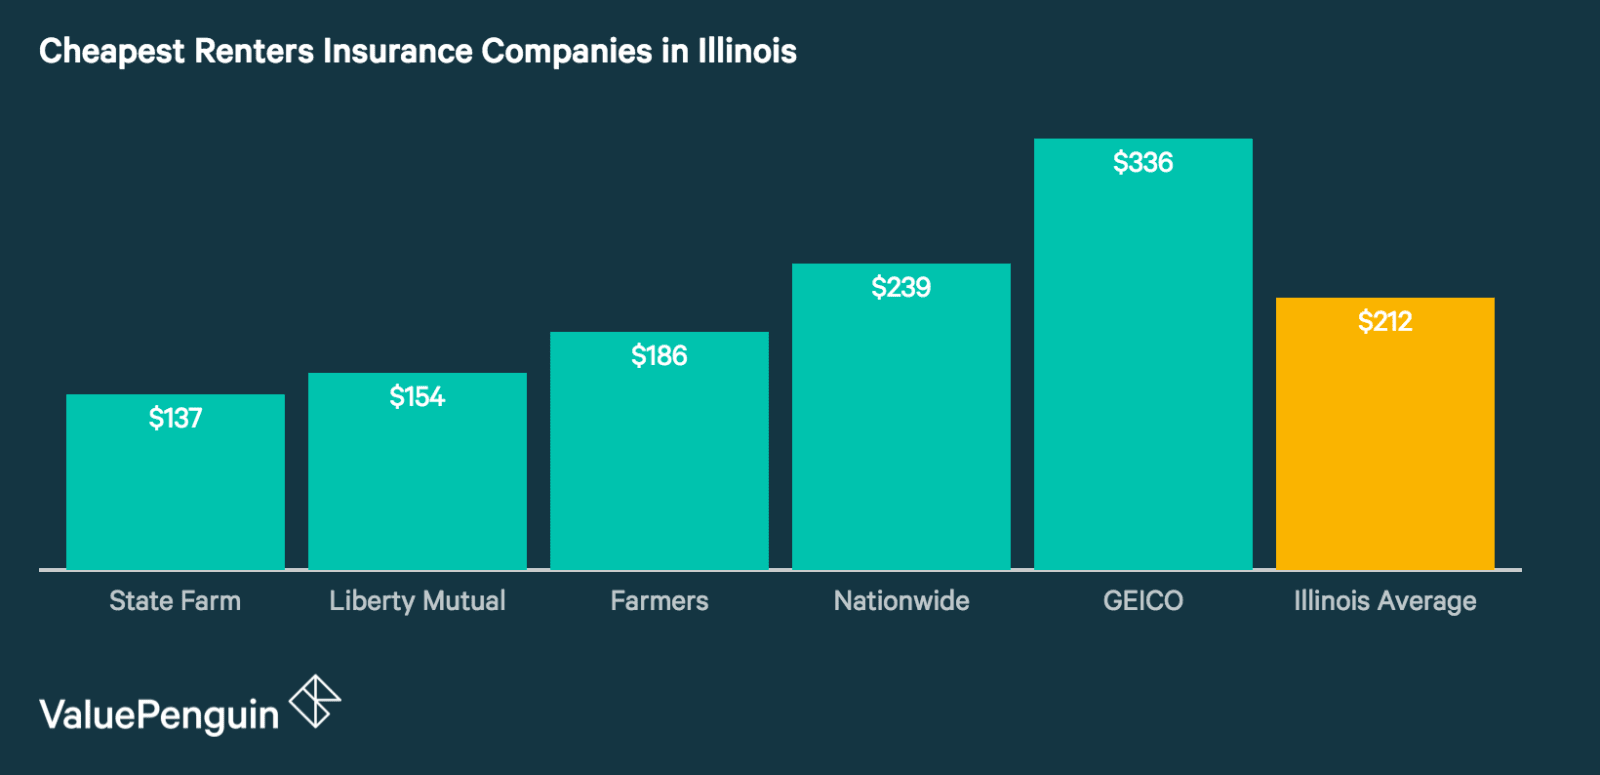 Best and Cheapest Renters Insurance Companies in Illinois